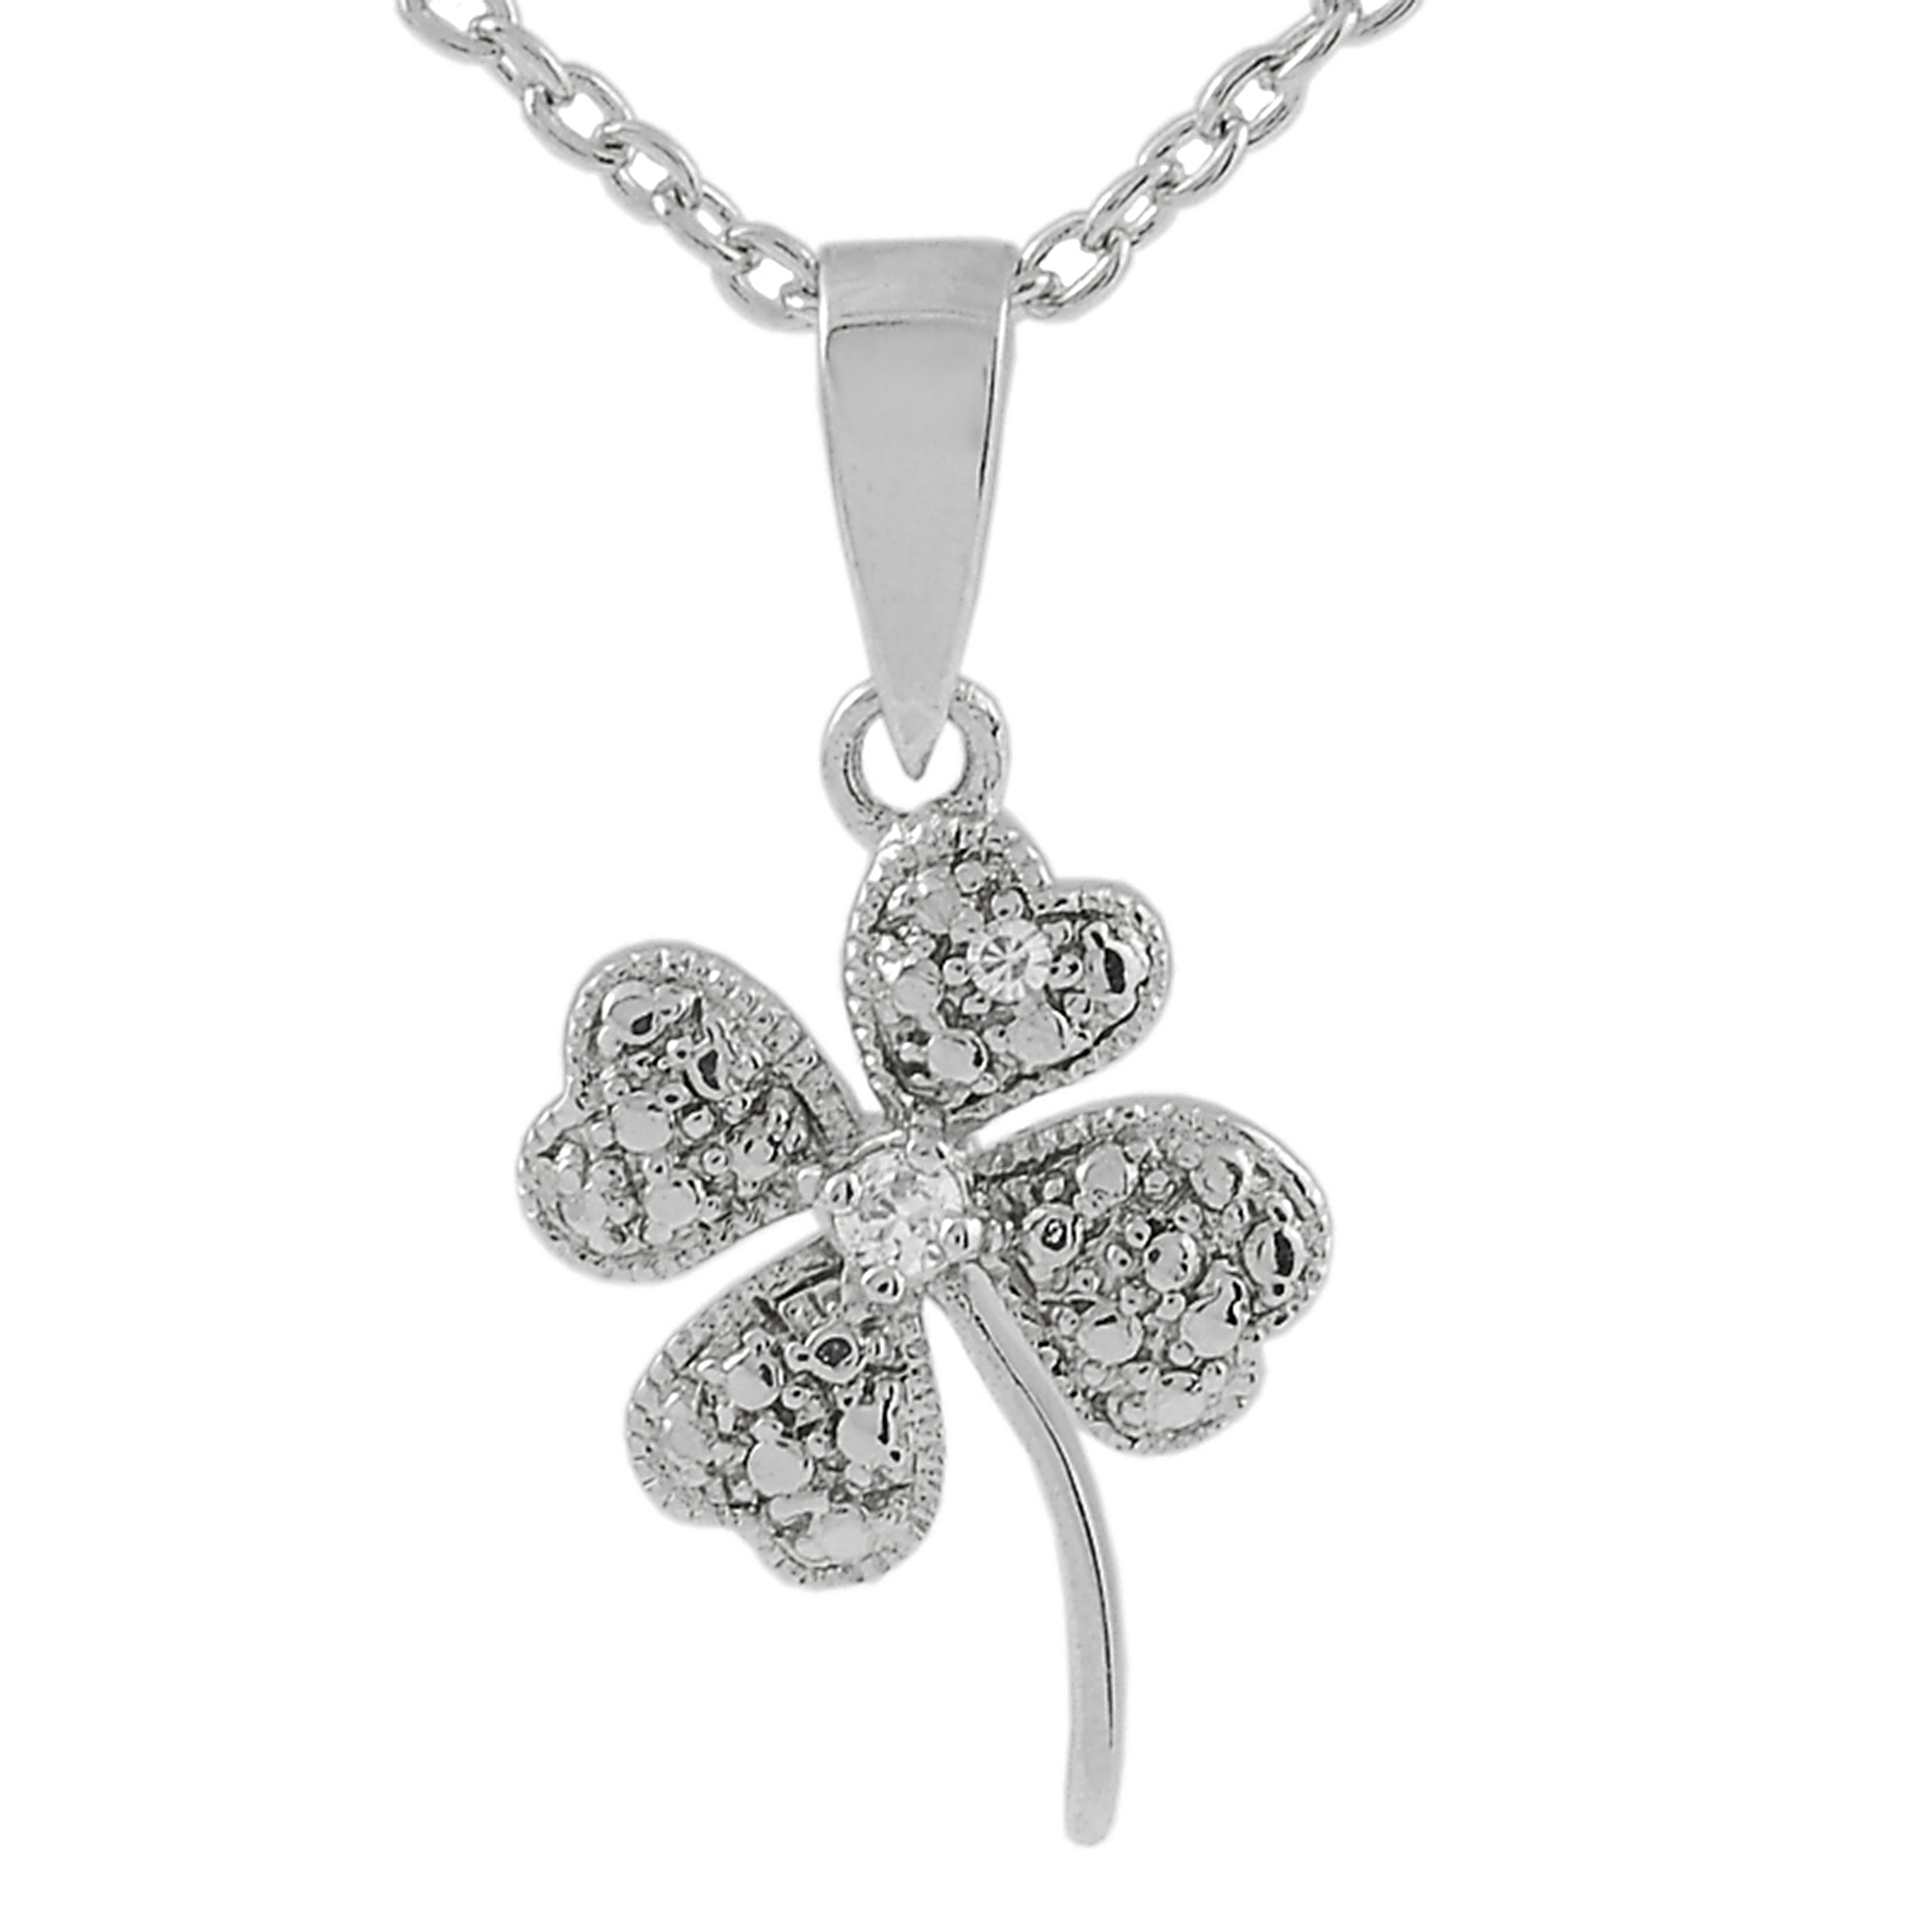 SilverBin Sterling Silver Cubic Zirconia Four Leaf Clover Necklace (Chain Included) at Sears.com